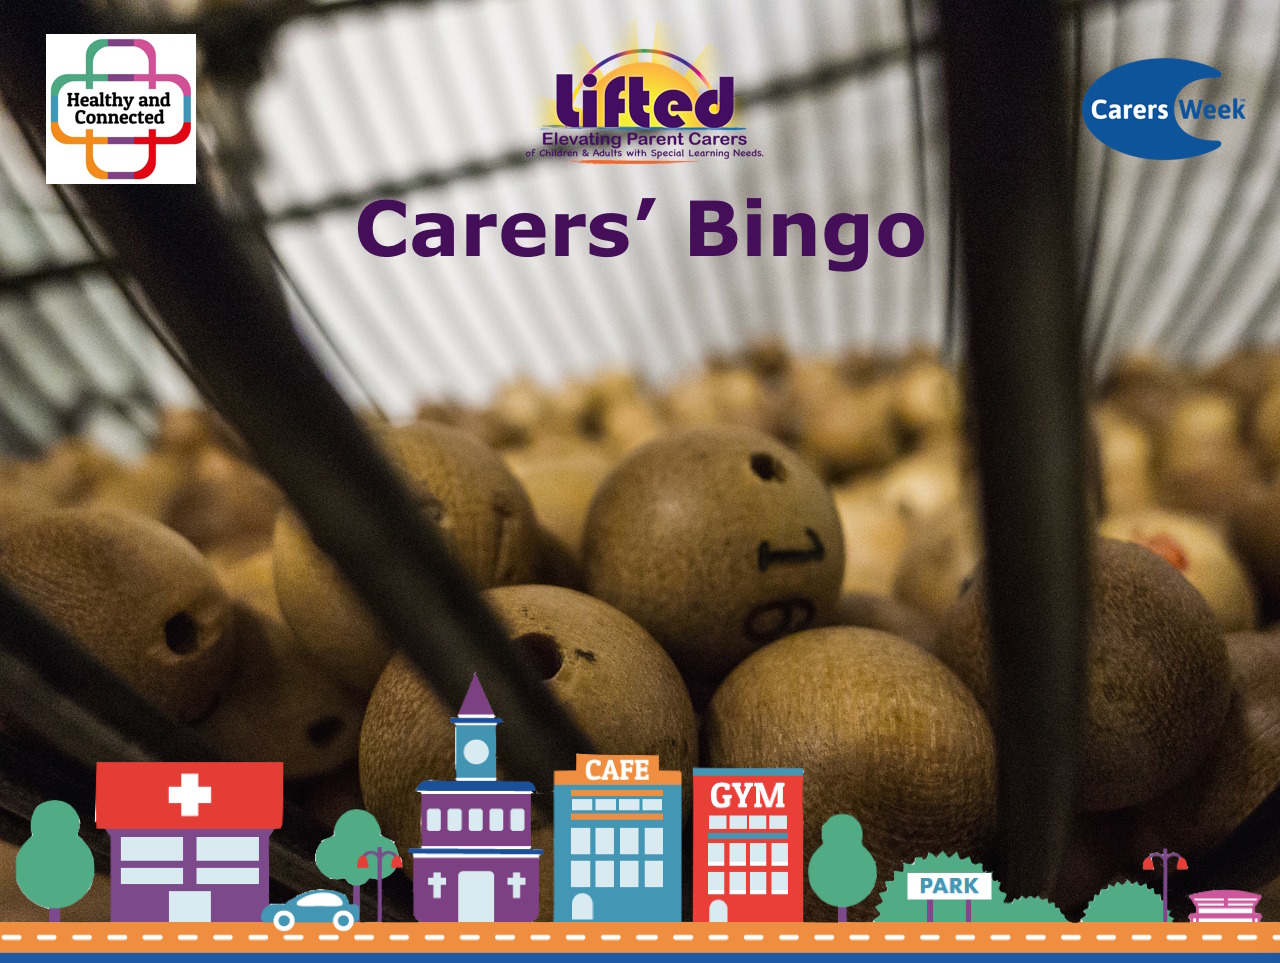 Teaser image for Lifted's Carers Week Bingo 2018 | original images from pixabay.com | Carers Week logos via carersweek.org